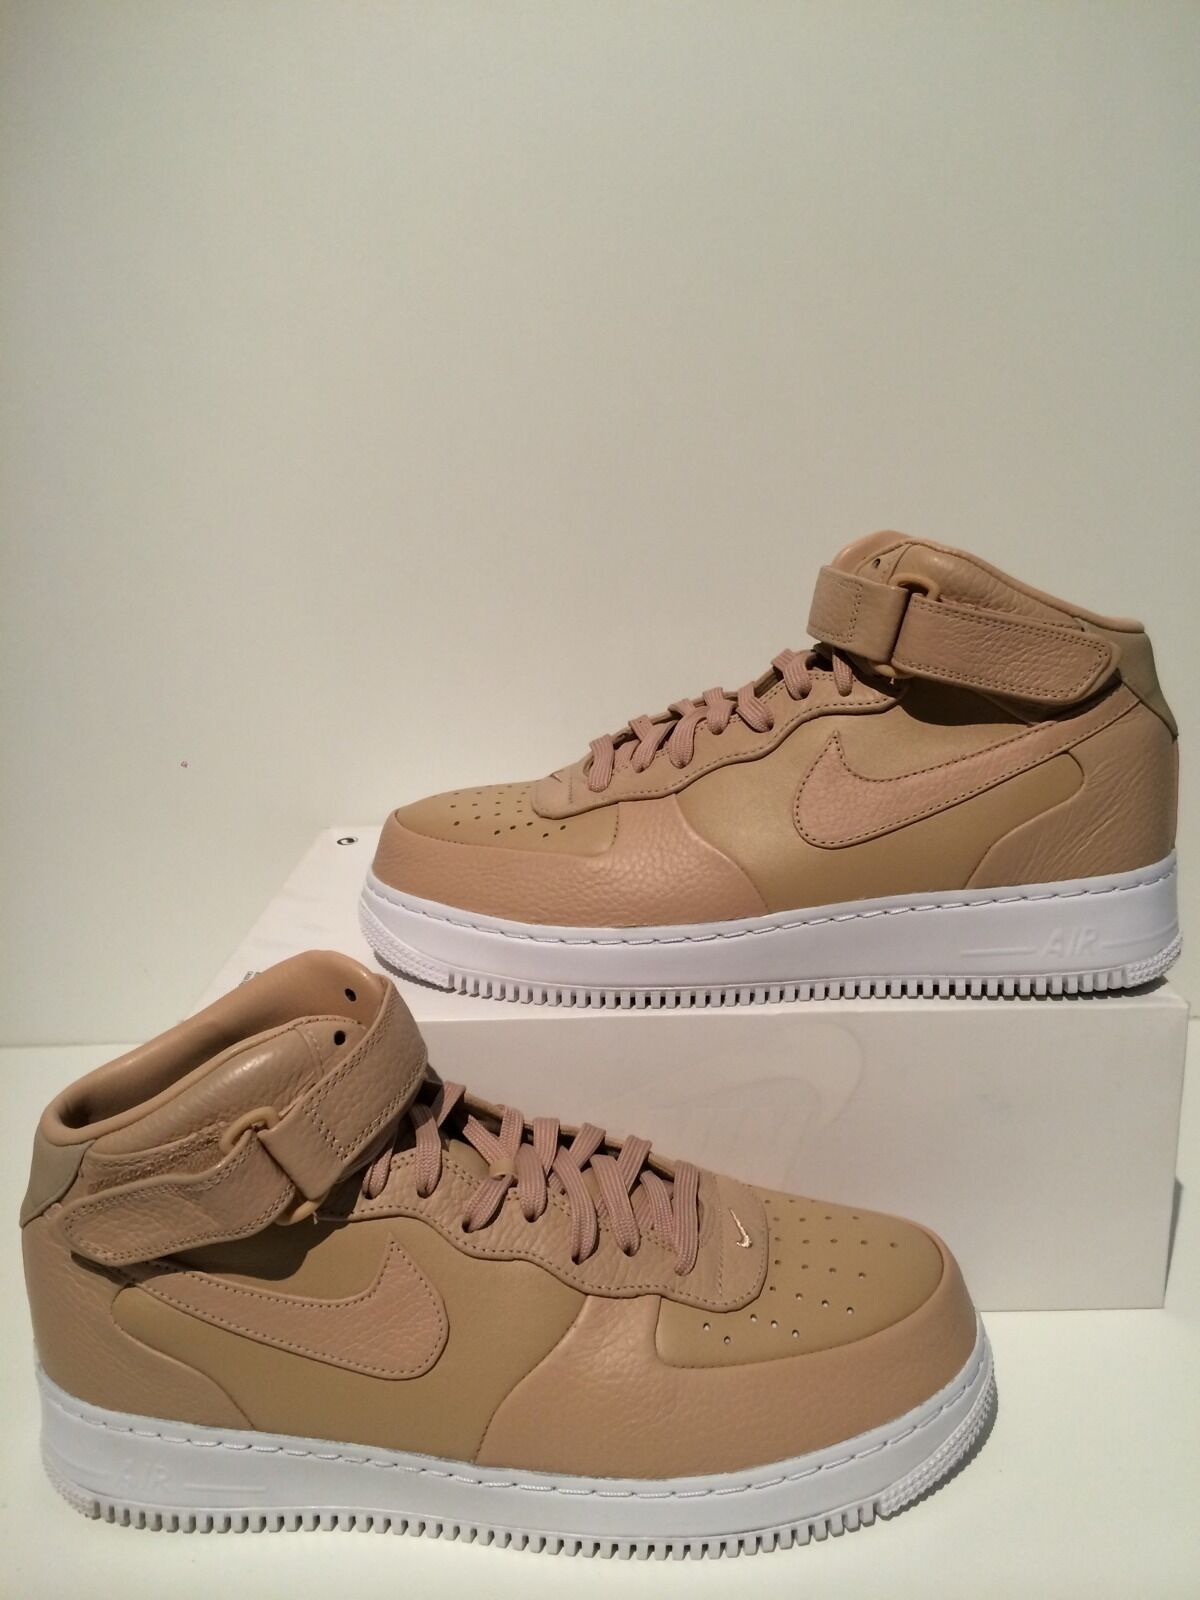 New NikeLab Nike AF1 Air Force 1 Mid Vachetta Tan Men's Size 11 819677 200